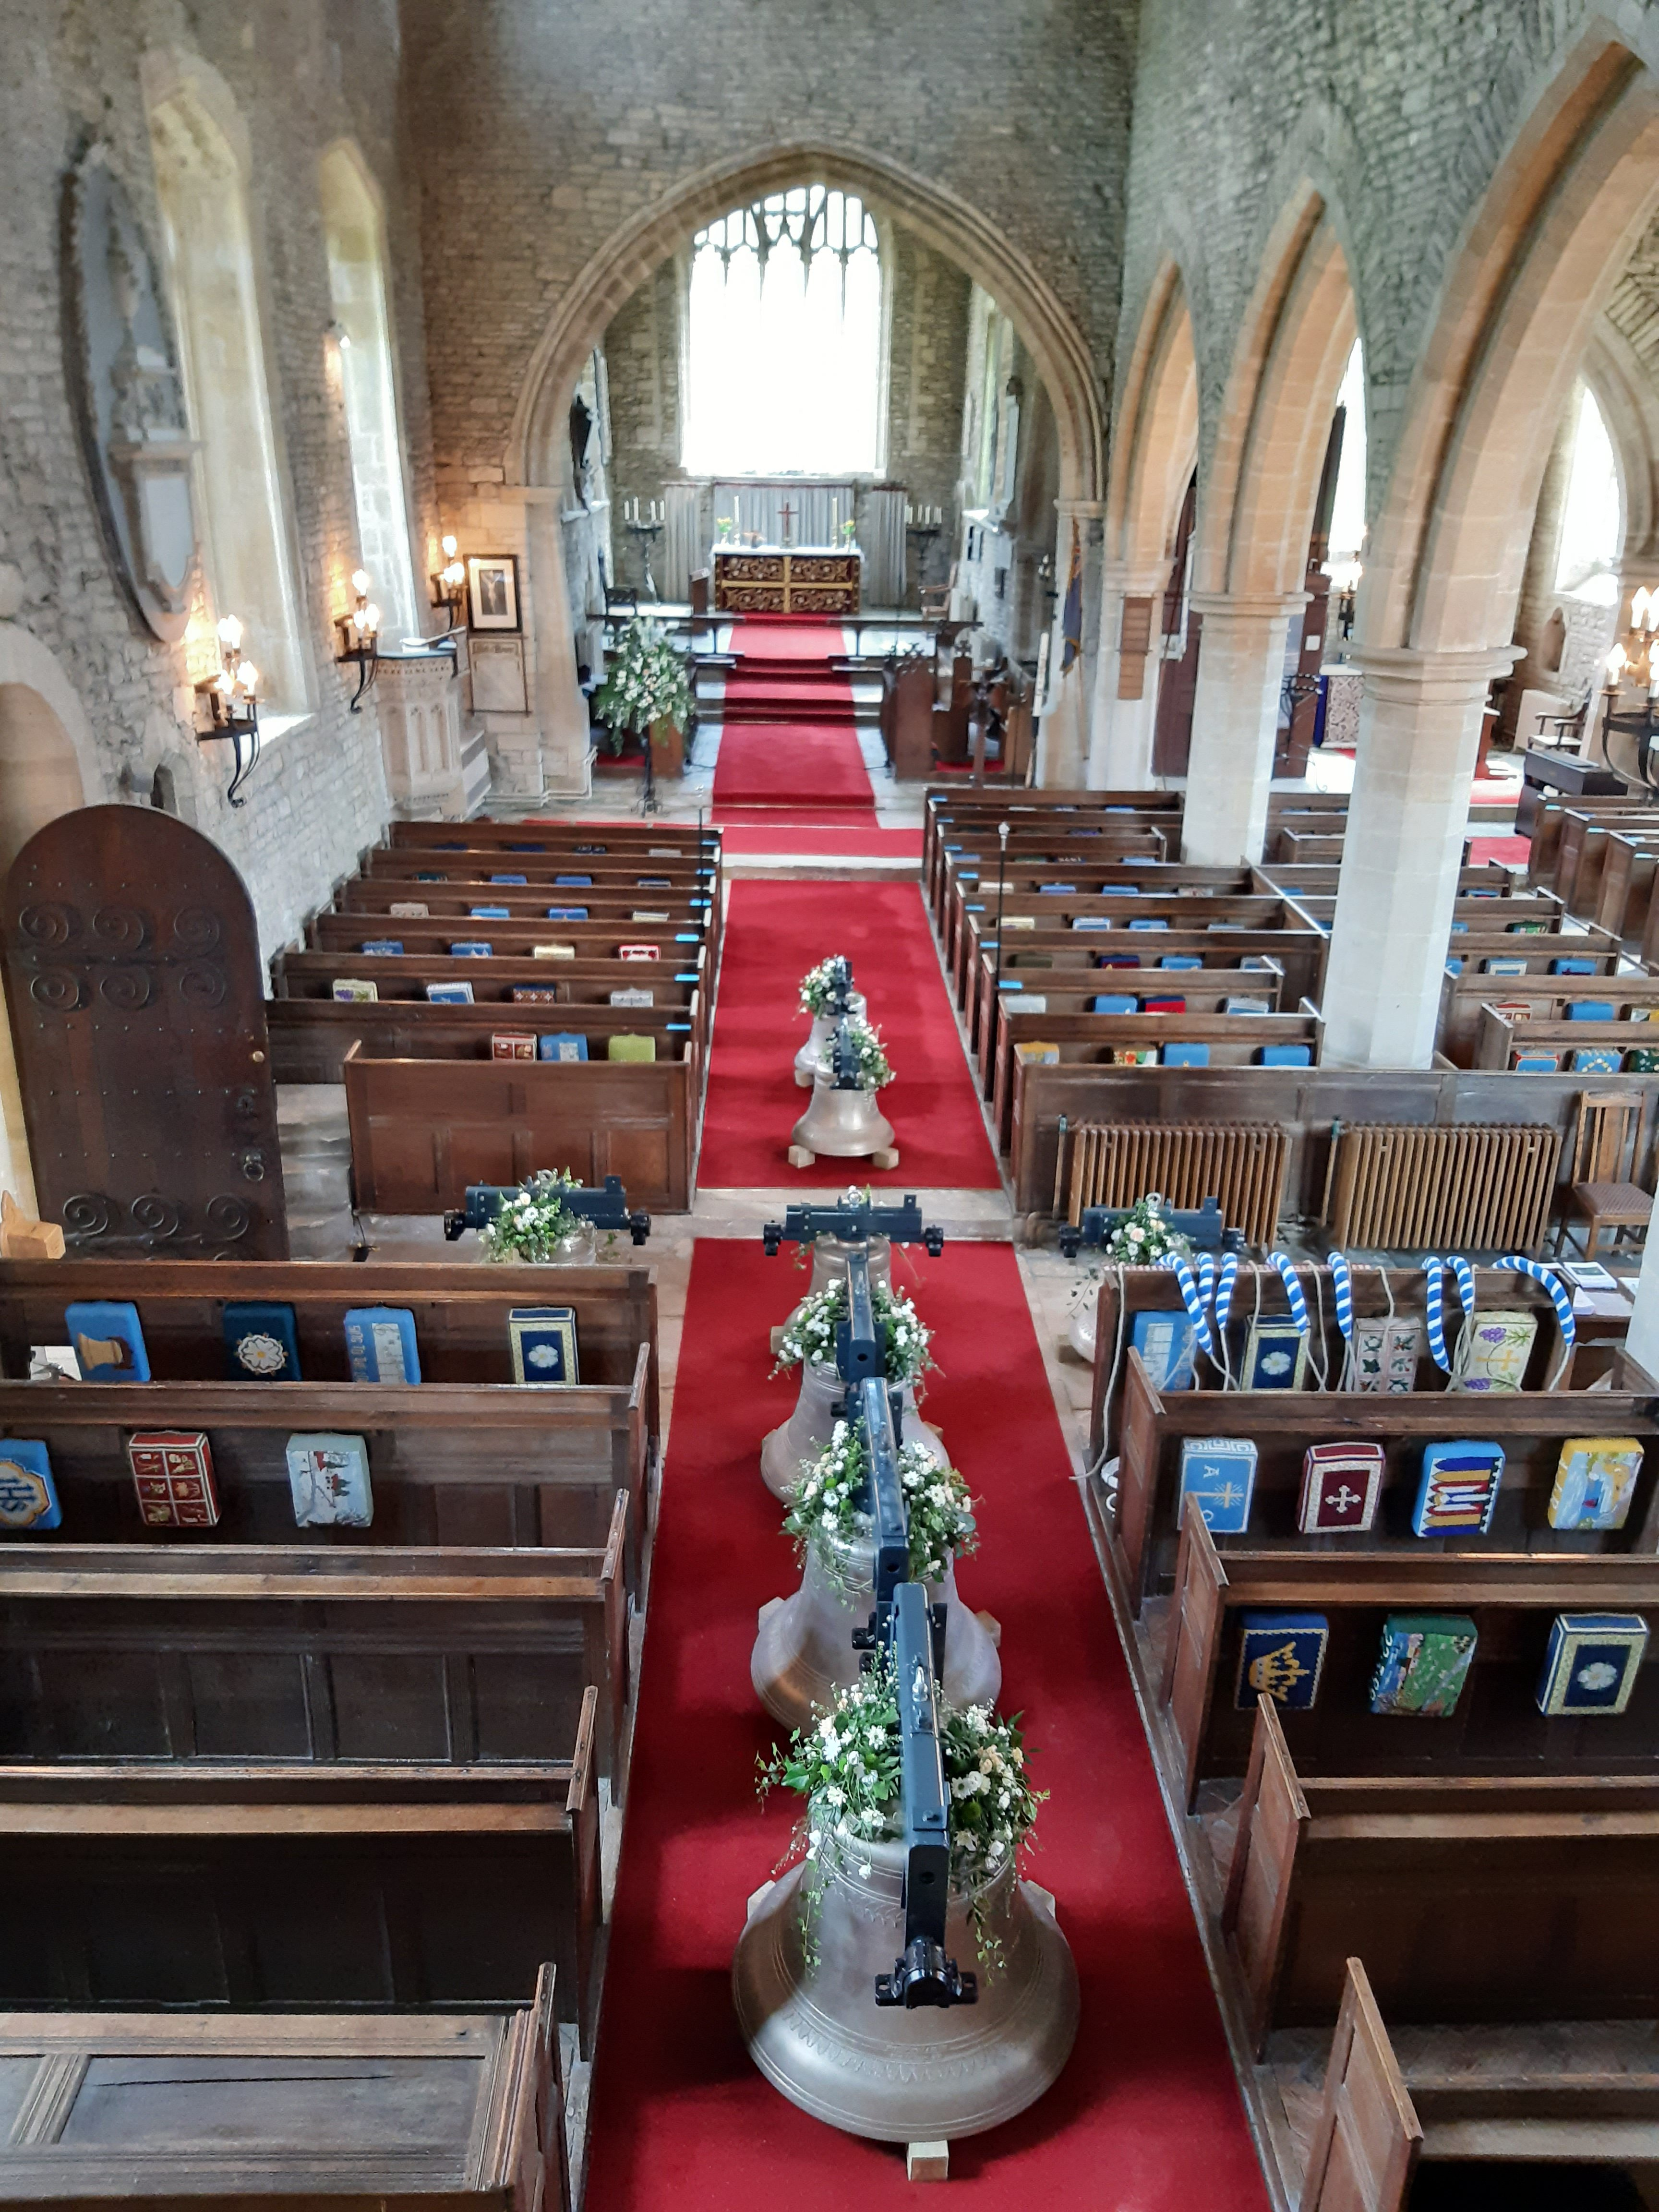 aerial view of bells in church aisle